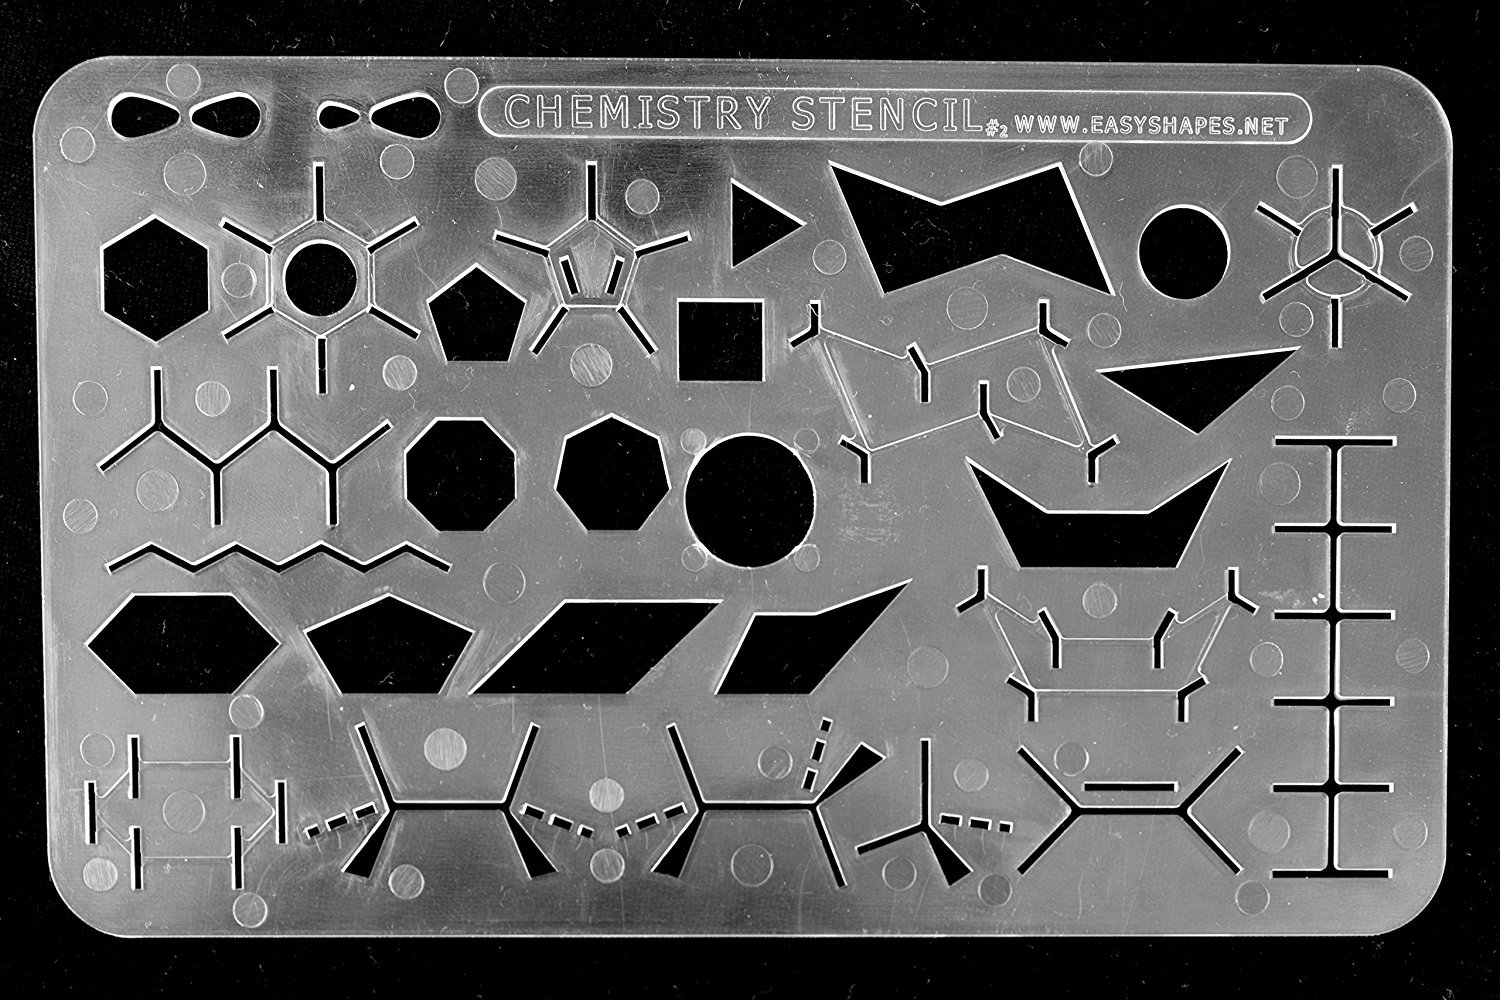 Buy Easyshapes Organic Chemistry Stencil Drawing